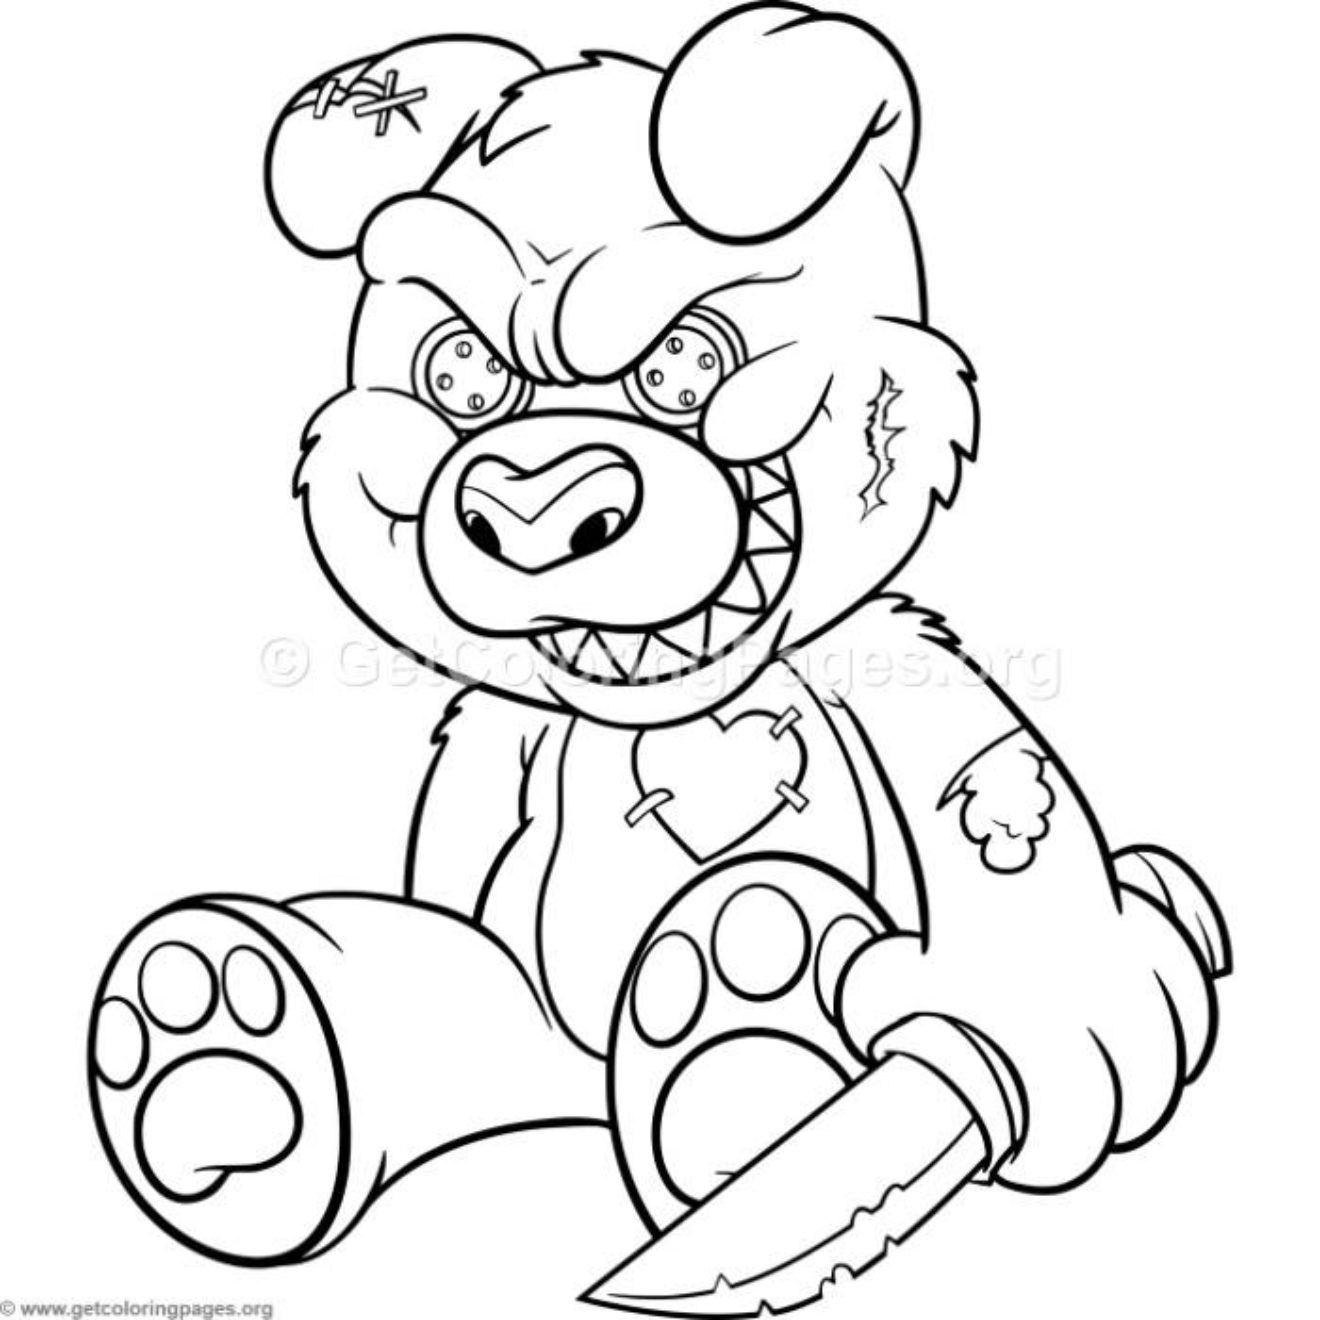 Funny Cartoon Evil Teddy Bear 2 Coloring Pages is part of Evil teddy bear -